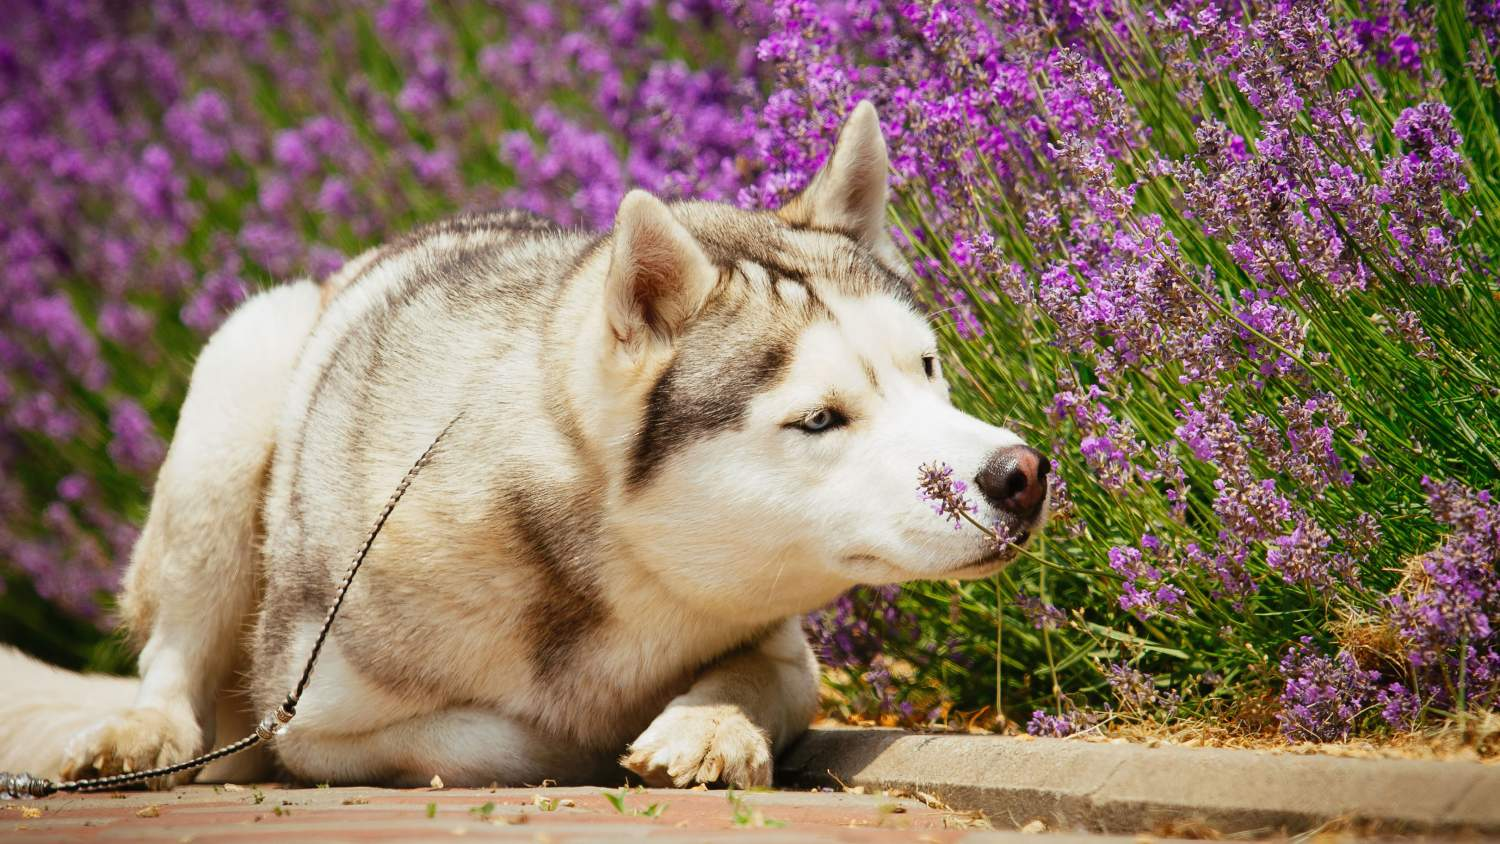 Dog sniffing the flowers